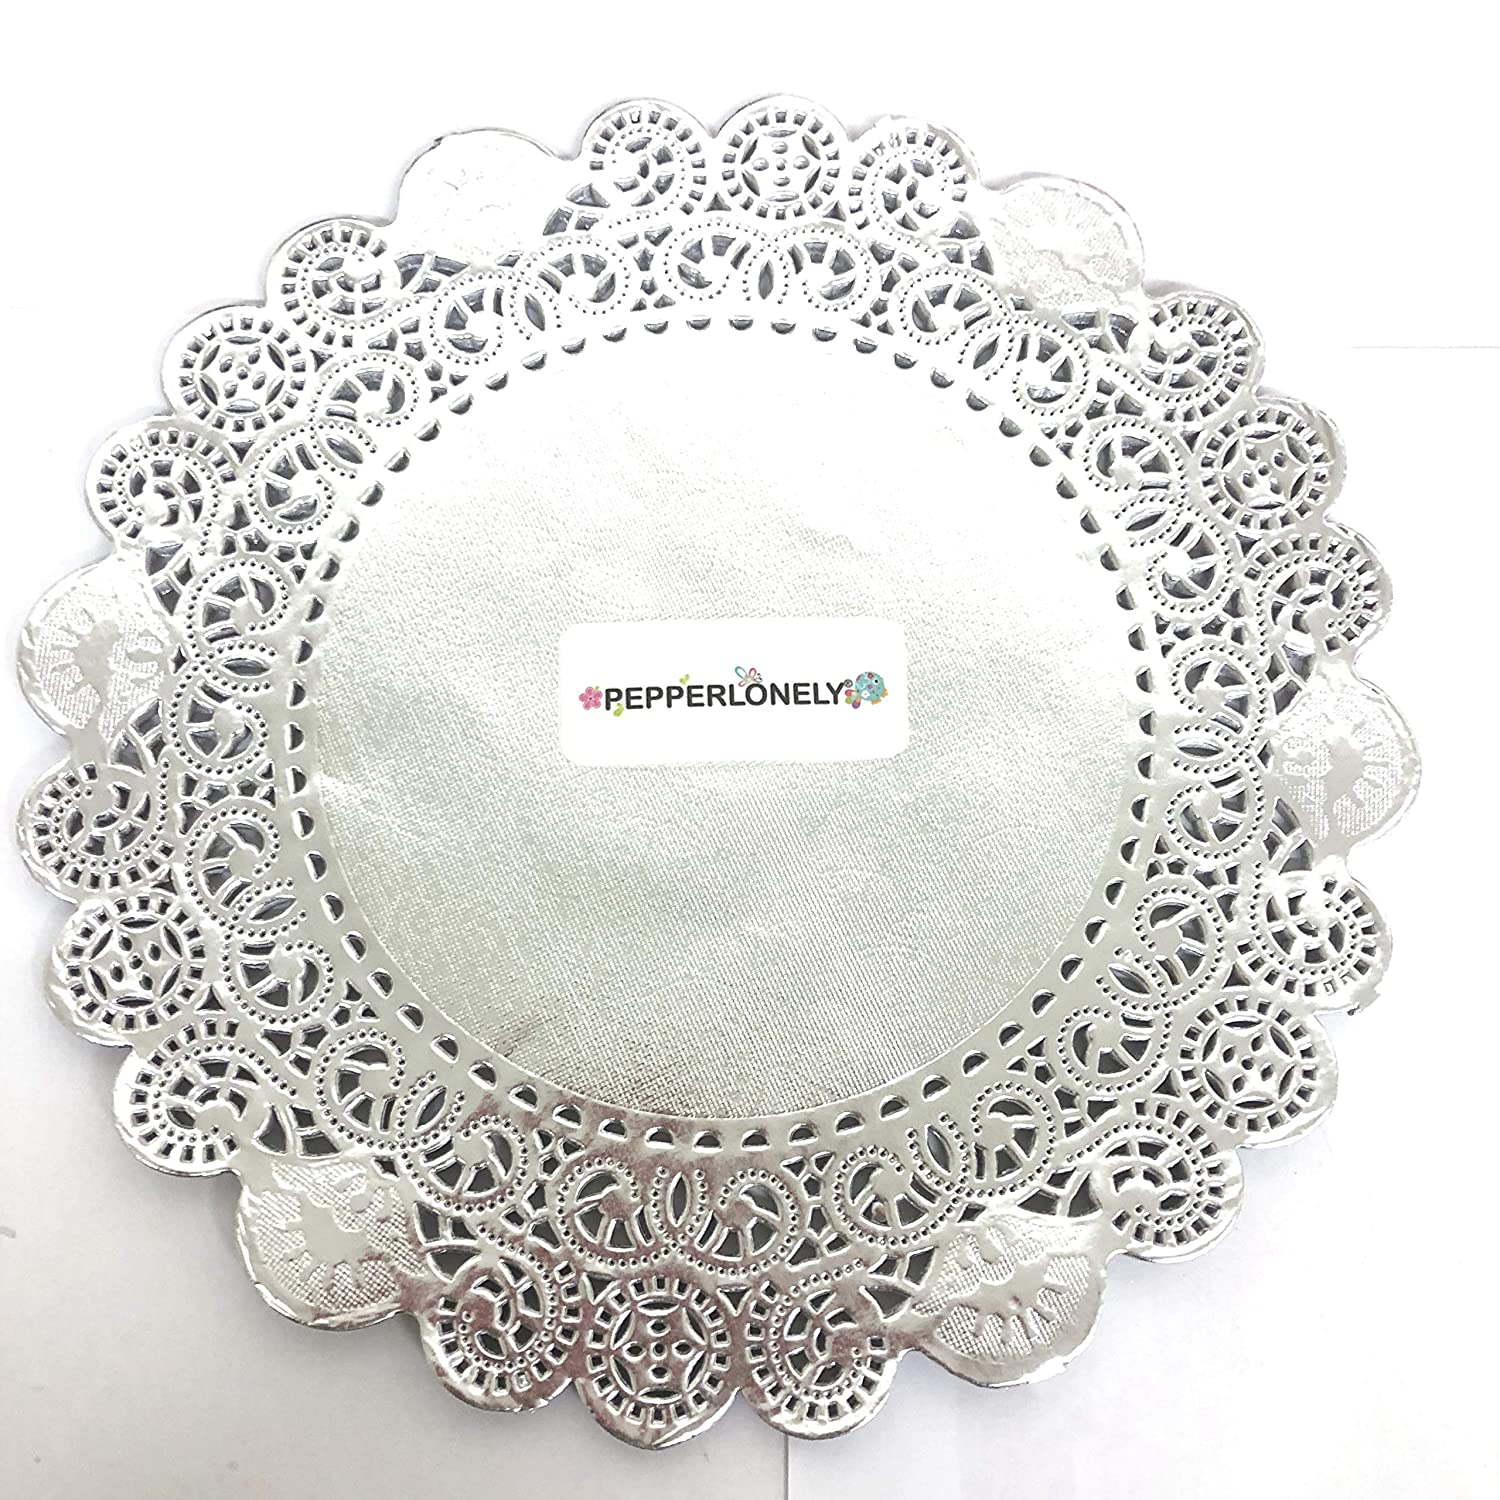 12 Inch PEPPERLONELY 25 PC Silver Classic Metallic Doilies